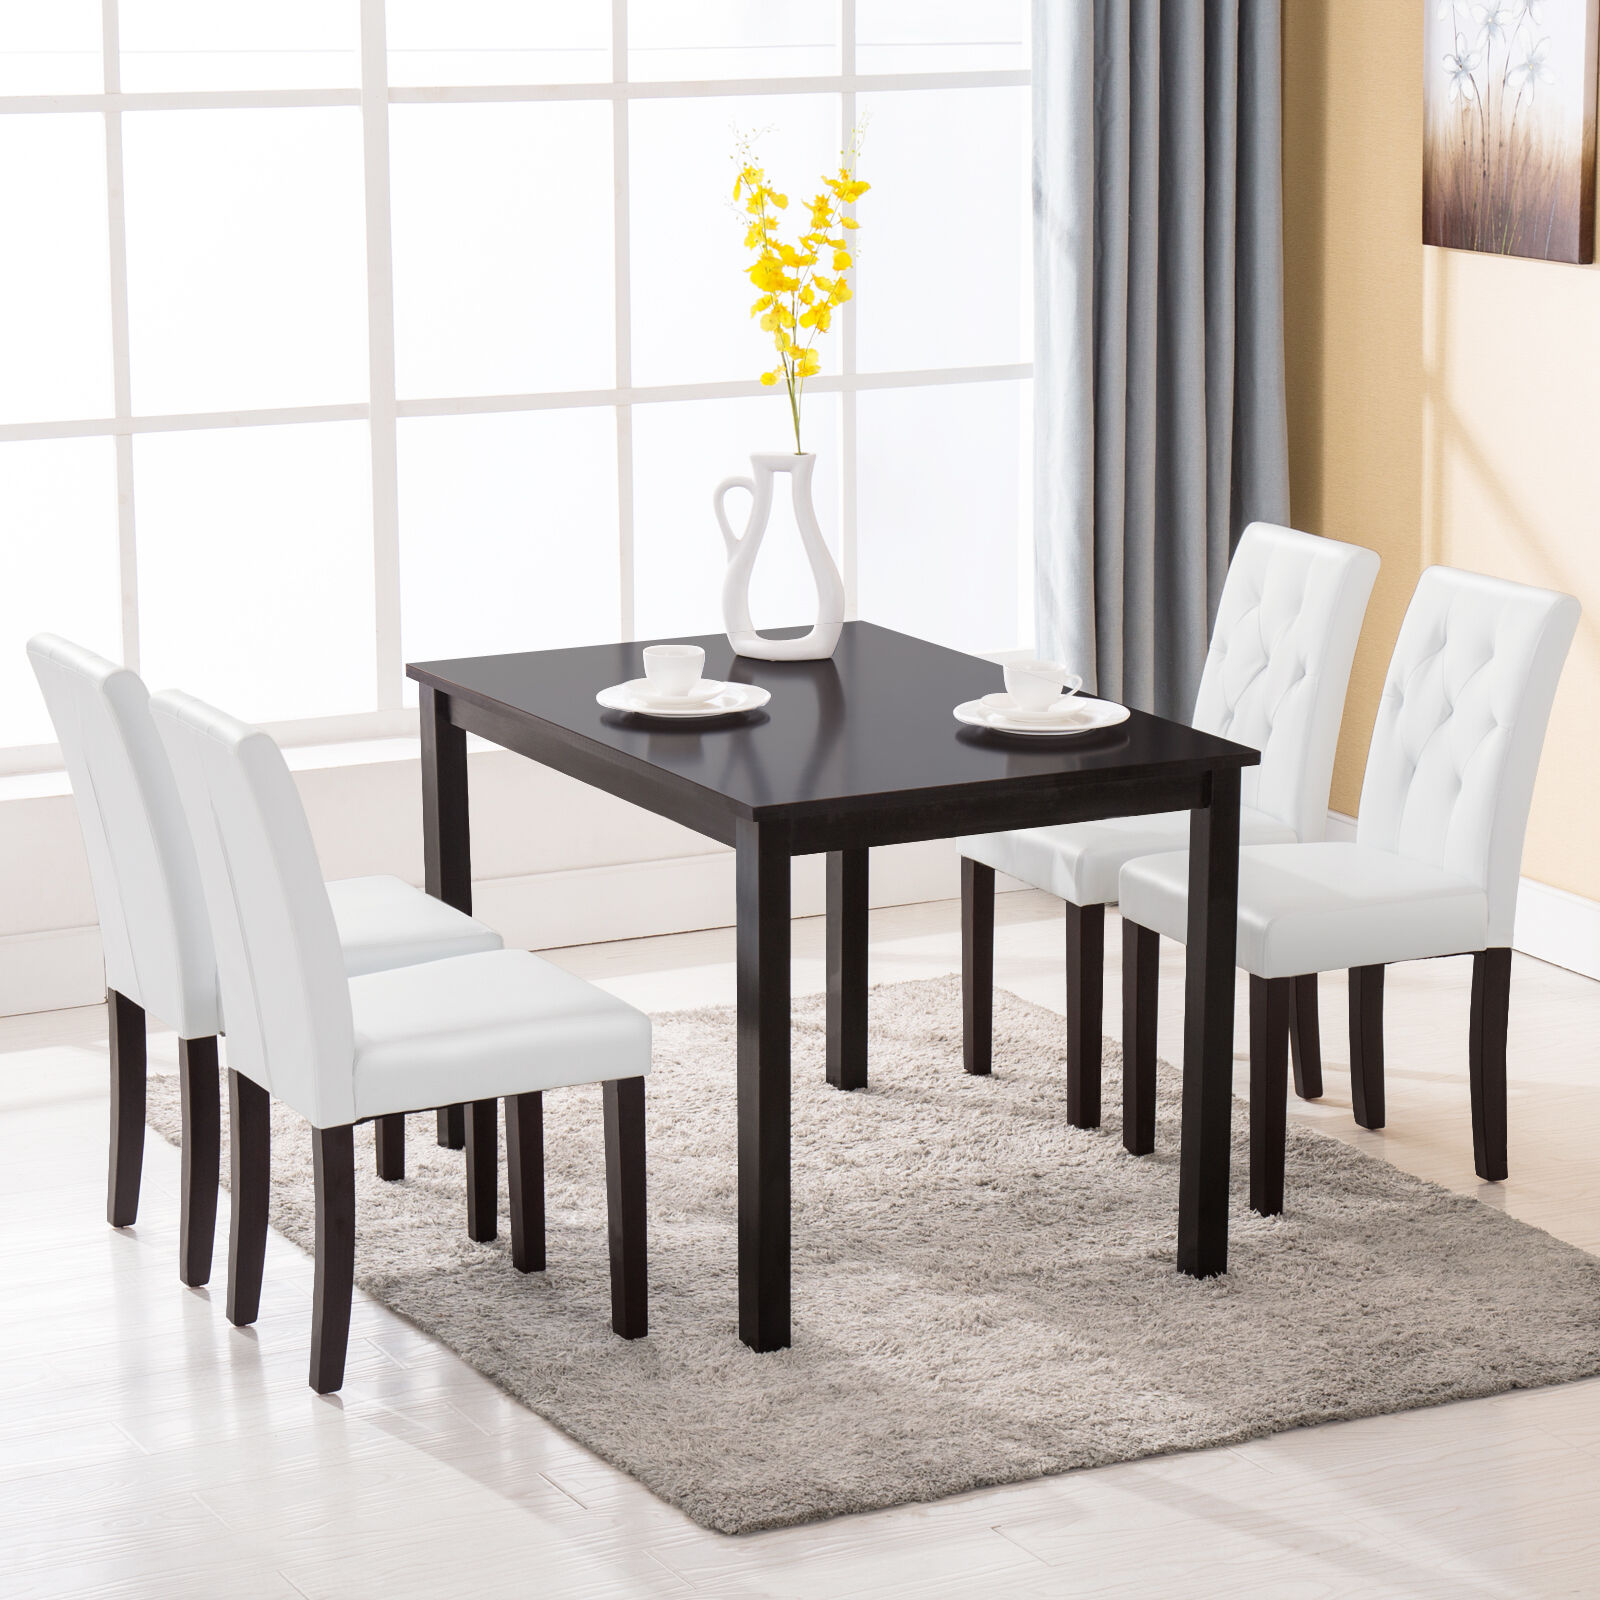 Kitchenette Table And Chair Sets: 5 Piece Dining Table Set 4 Chairs Room Kitchen Dinette